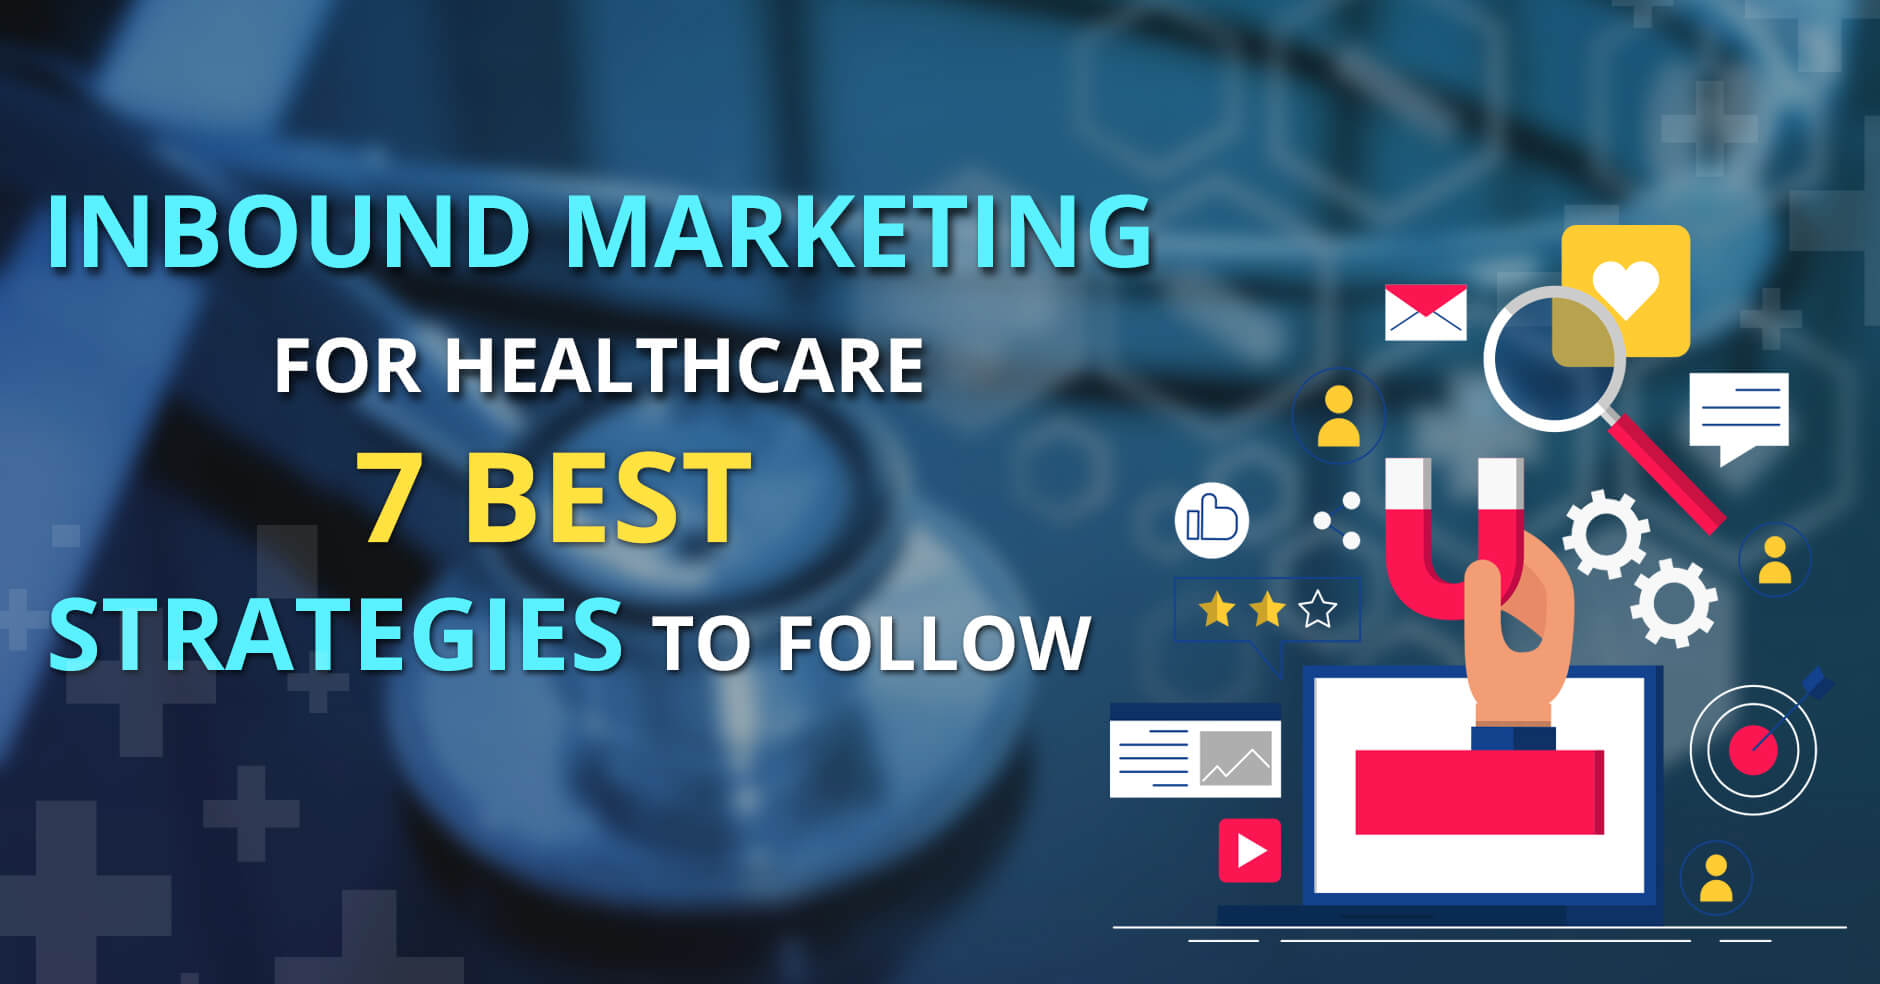 Inbound Marketing for Healthcare: 7 Best Strategies to Follow